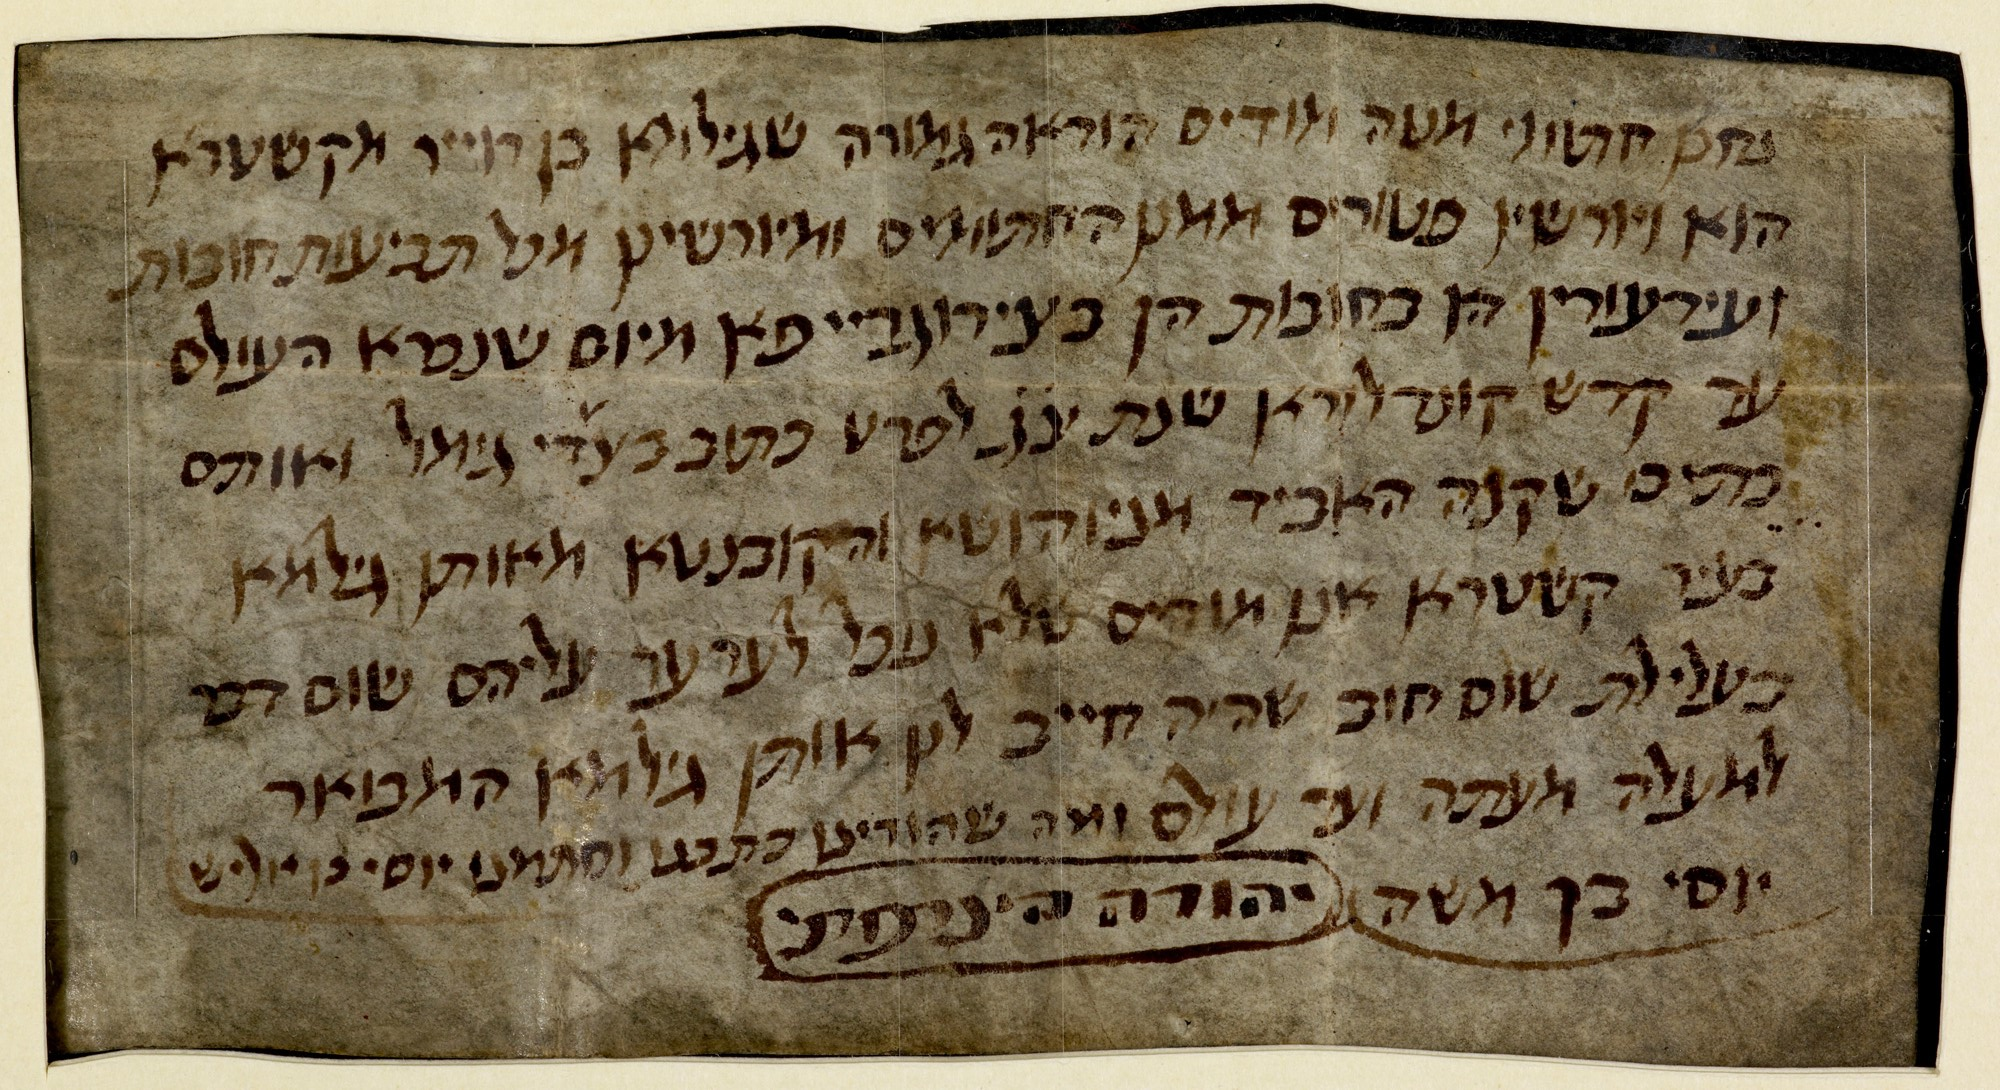 Hebrew Charters describing Jews in Medieval England